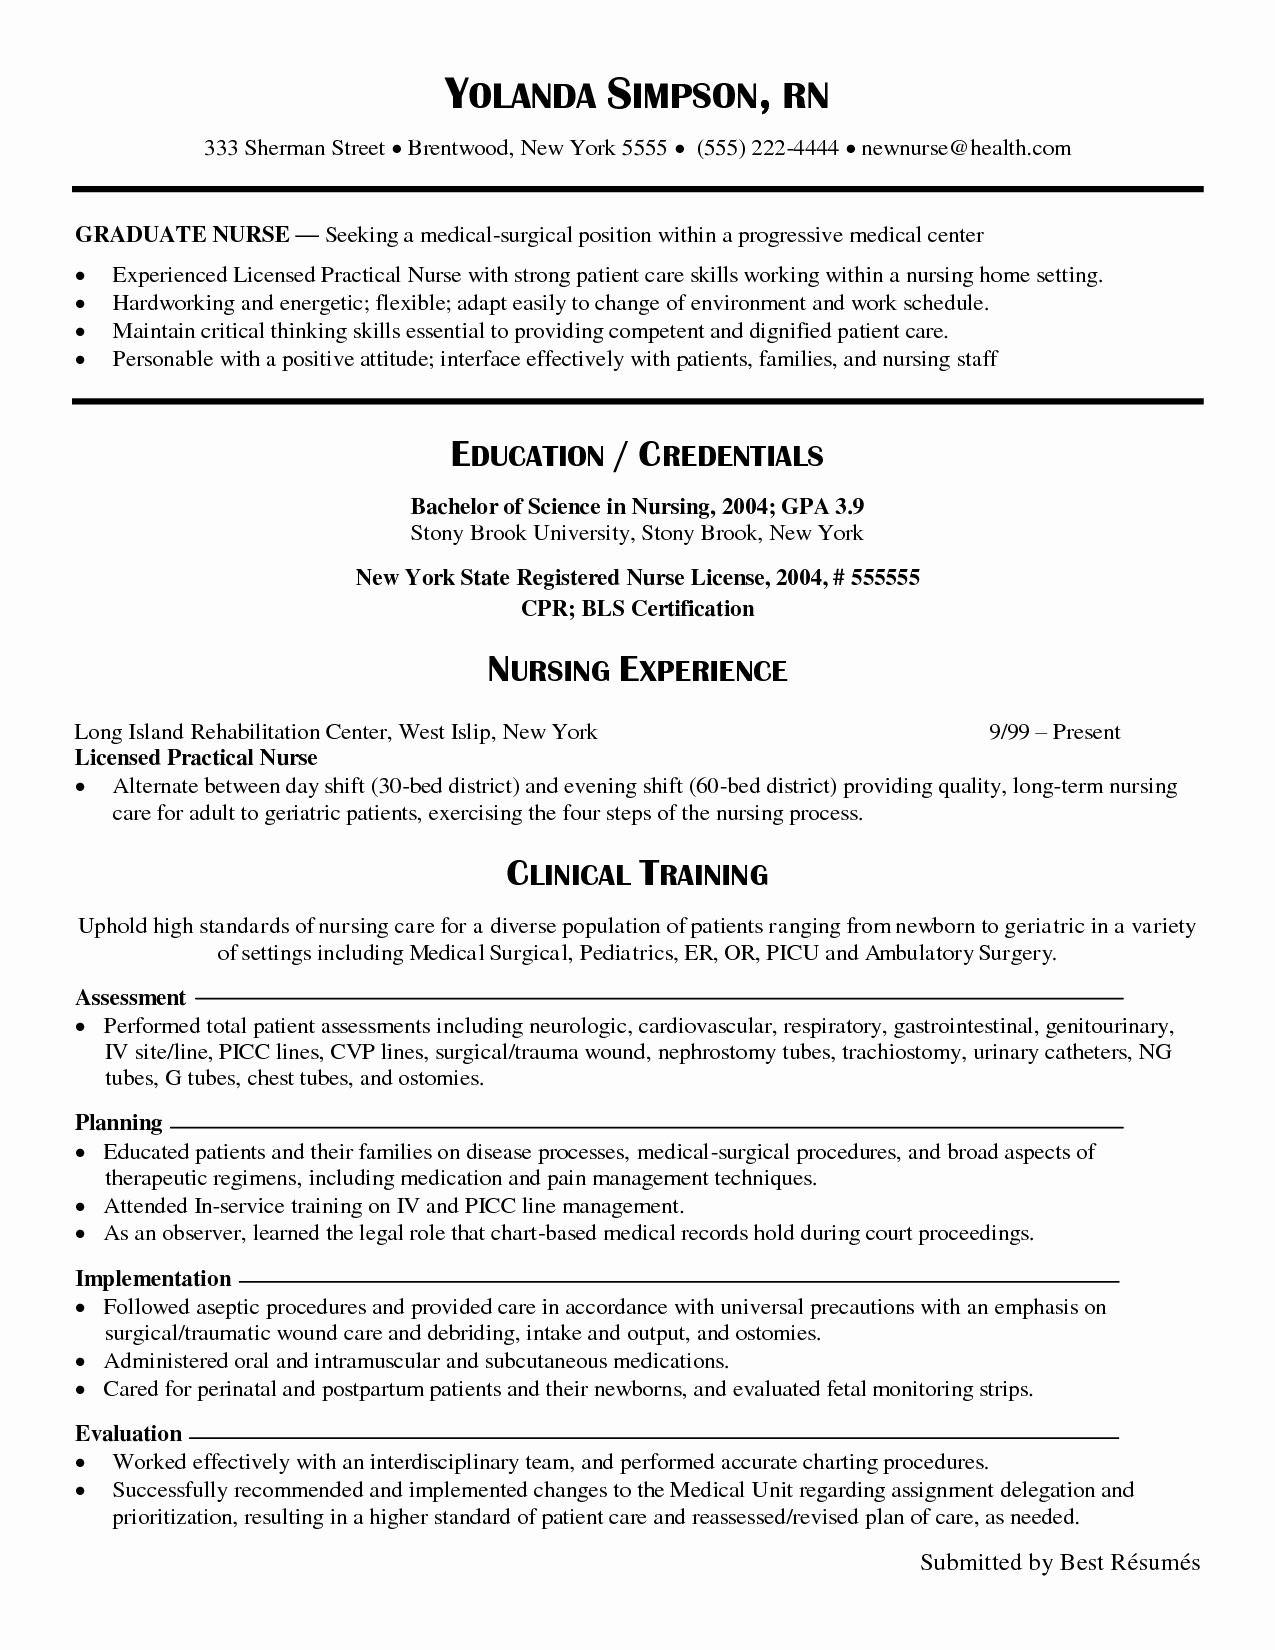 Nursing Clinical Experience Resume Fresh Clinical Experience On Nursing Resume Google Search Nursing School